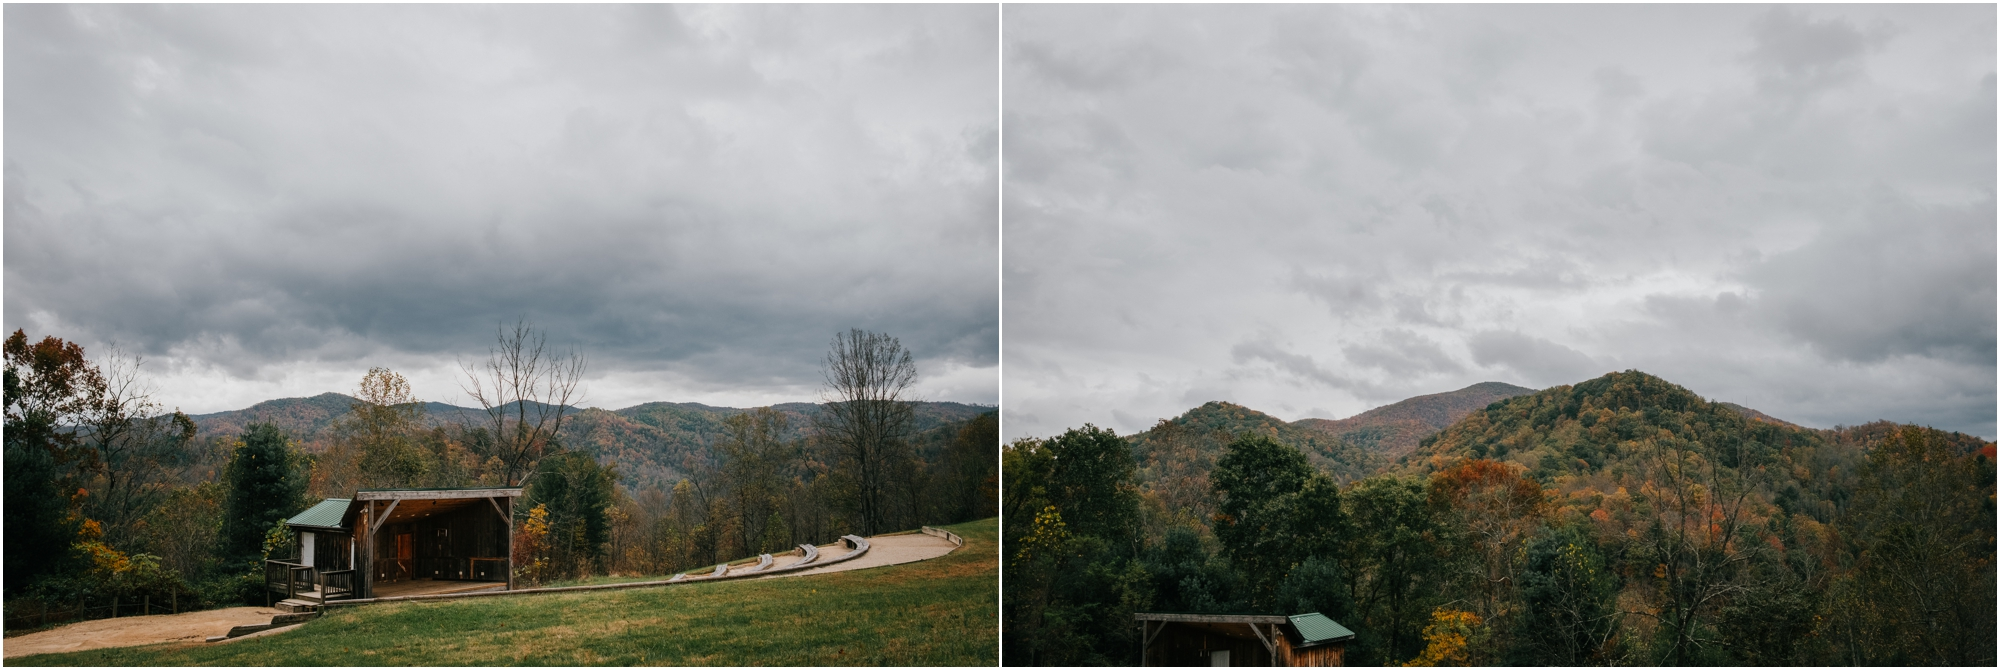 Sugar-Hollow-Retreat-Butler-Elizabethton-Tennessee-Rustic-Rainy-Wedding-Adventurous-Couple_0003.jpg